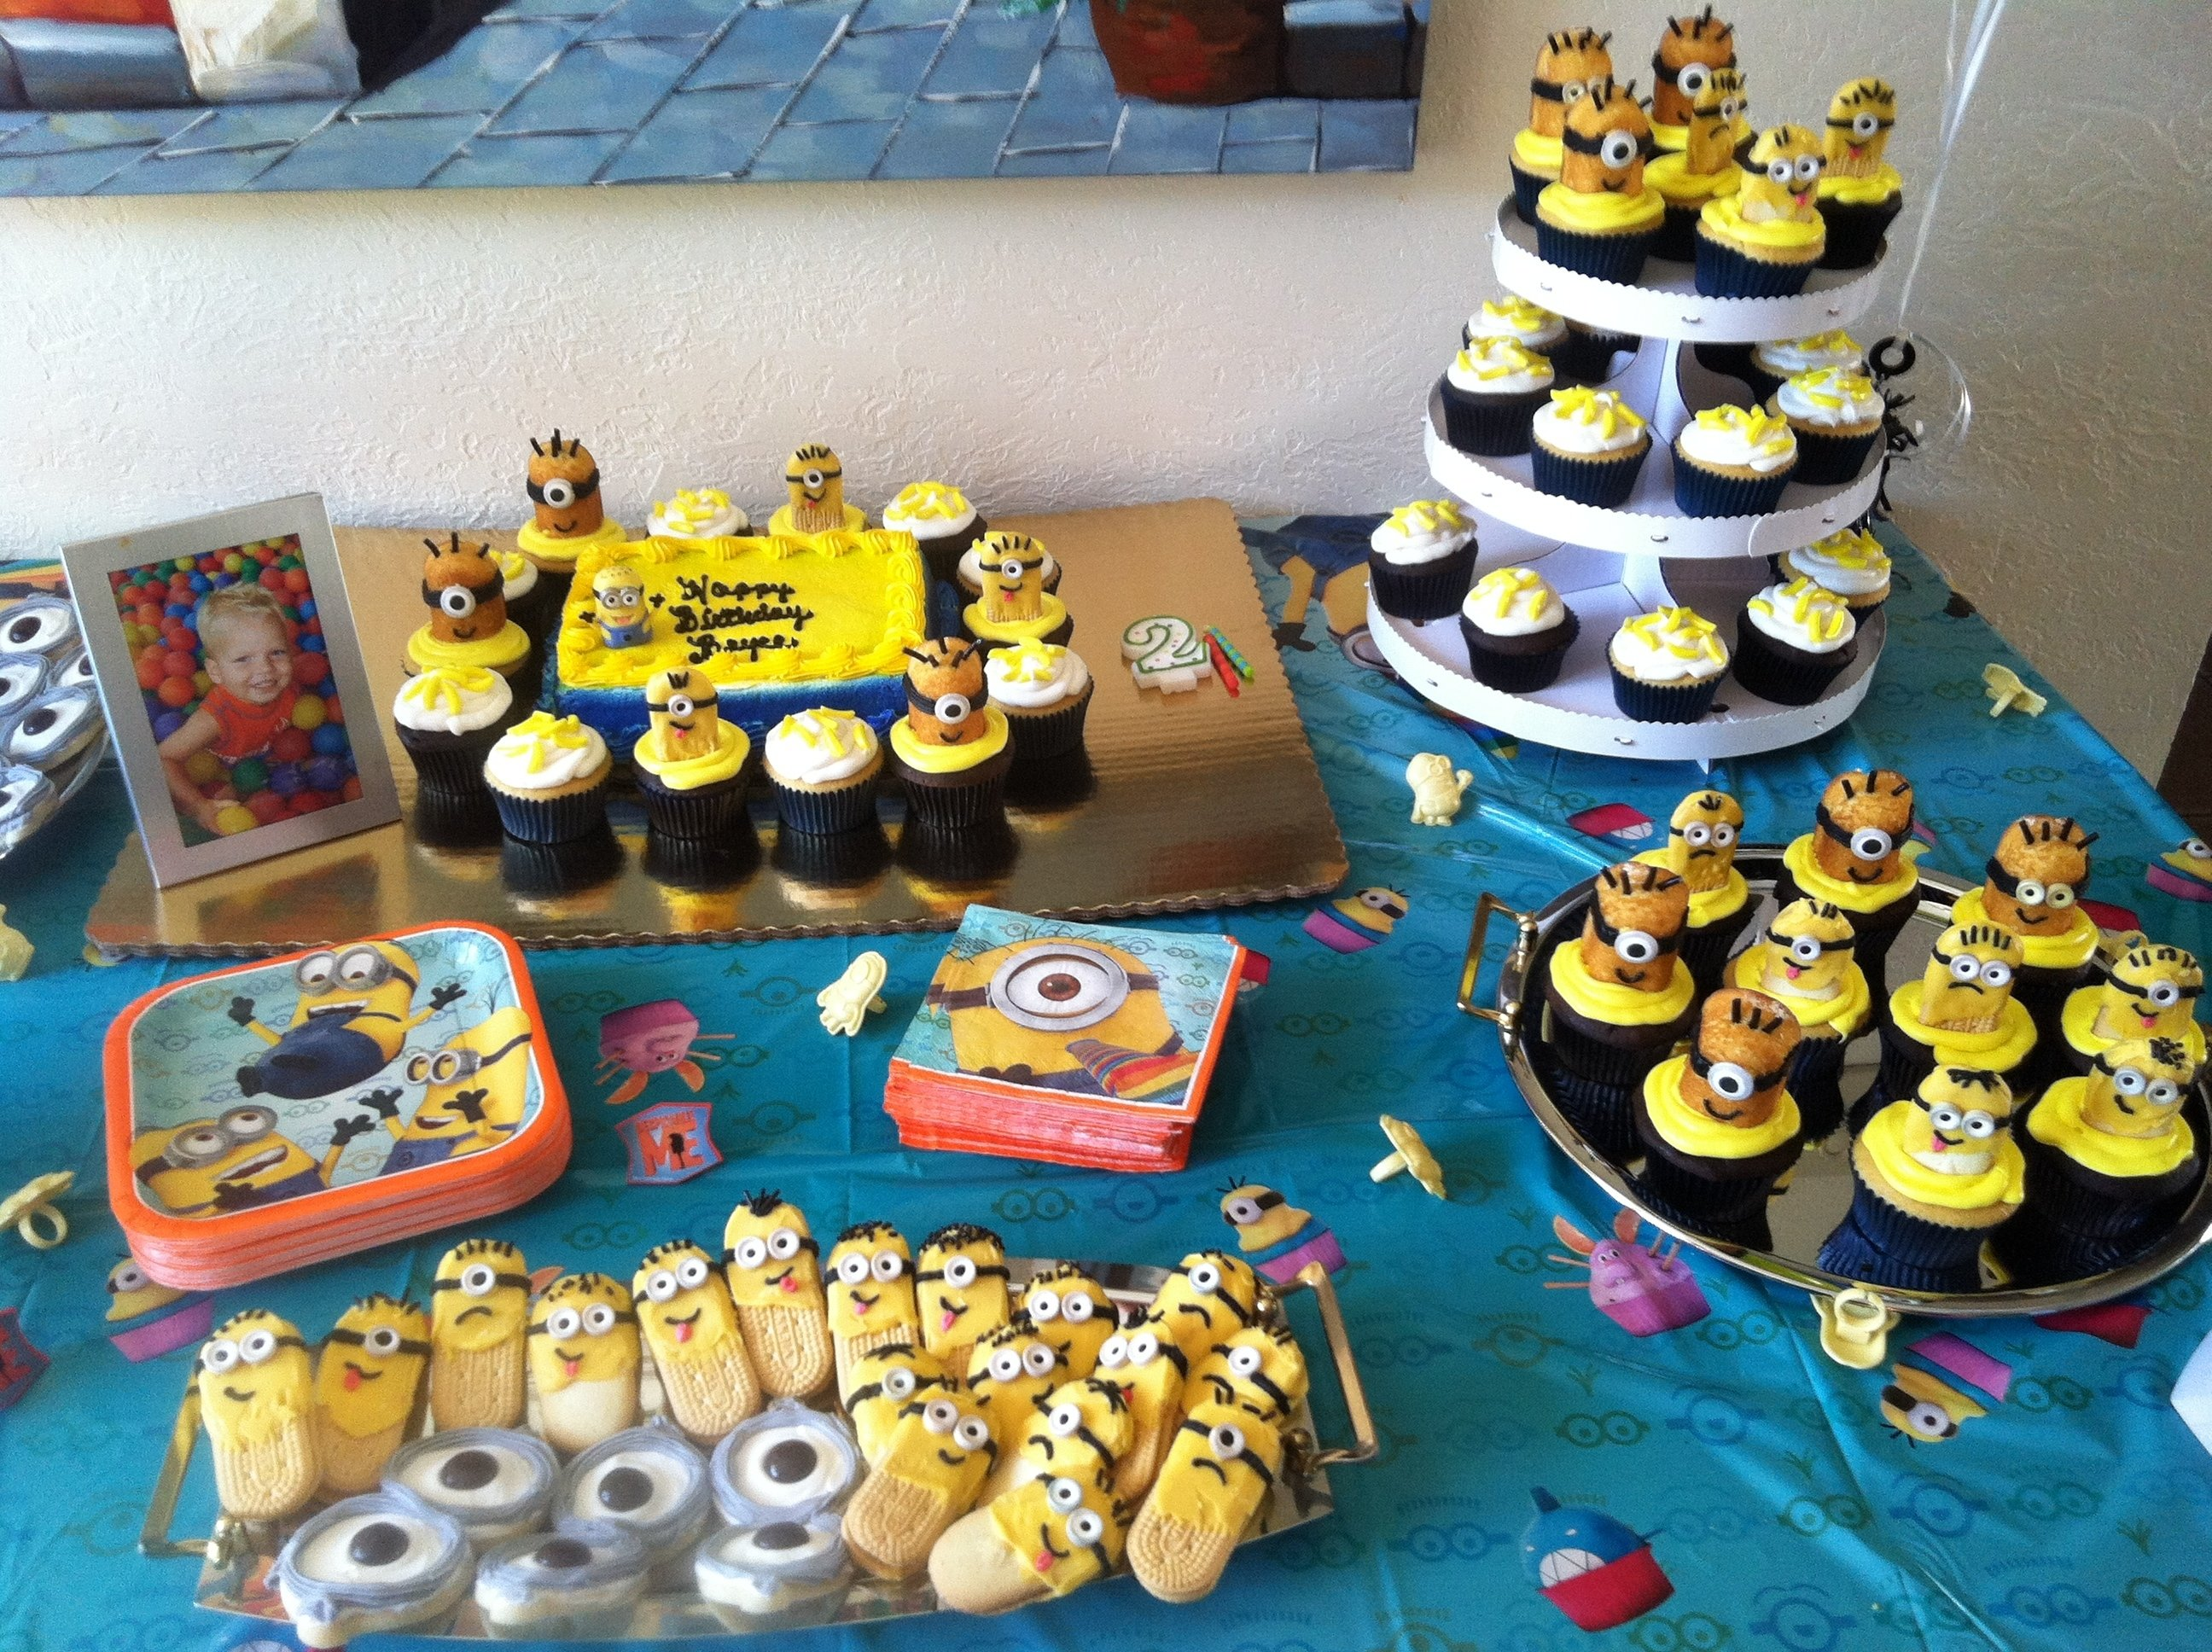 10 Unique 2 Year Old Party Ideas themes birthday 2 year old birthday party ideas on a budget also 2 10 2021